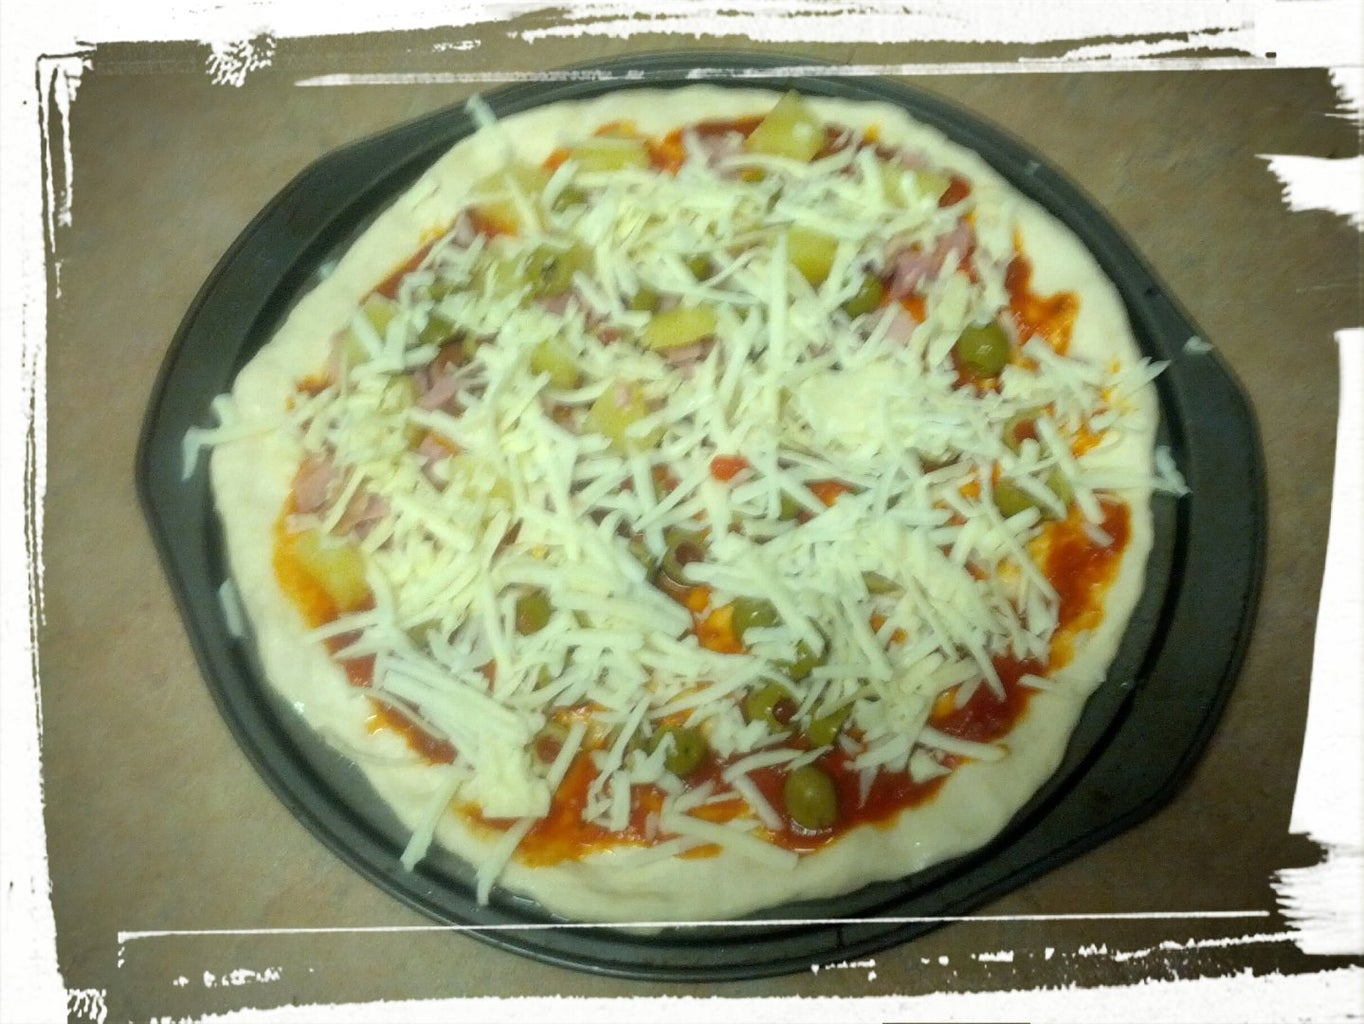 Add Your Toppings and Bake!